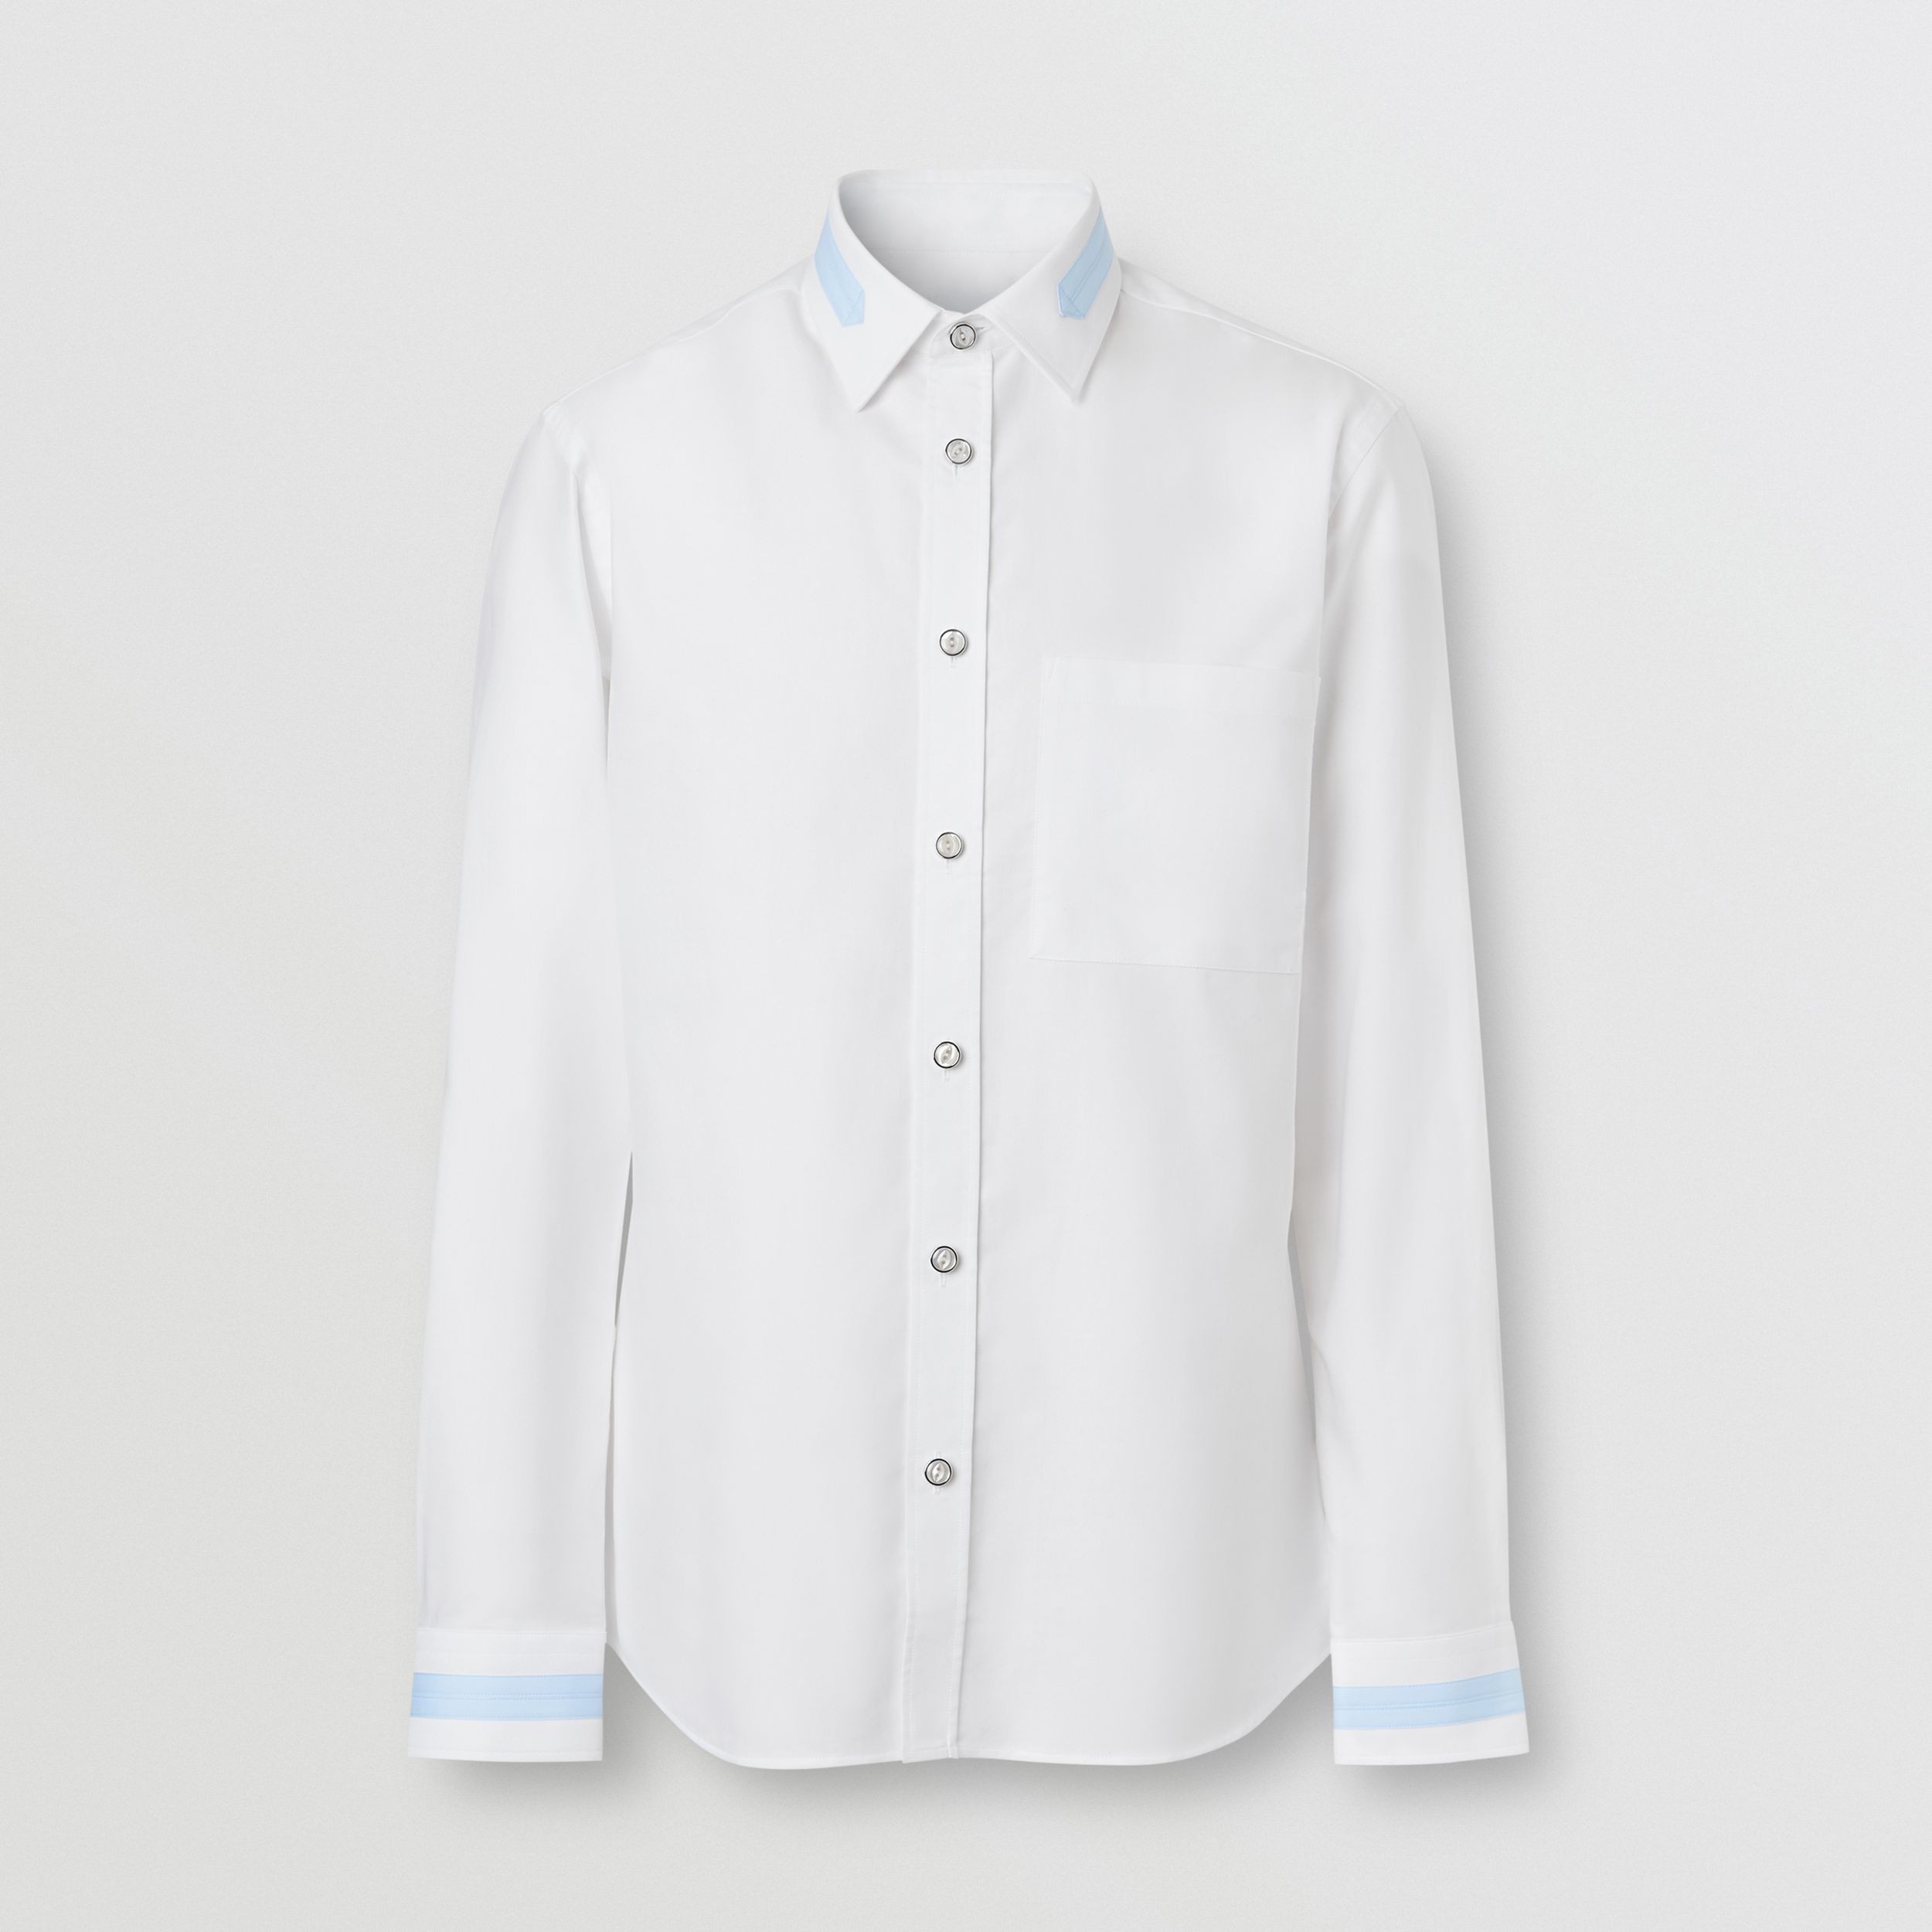 Slim Fit Cotton Oxford Shirt in White - Men | Burberry Australia - 4